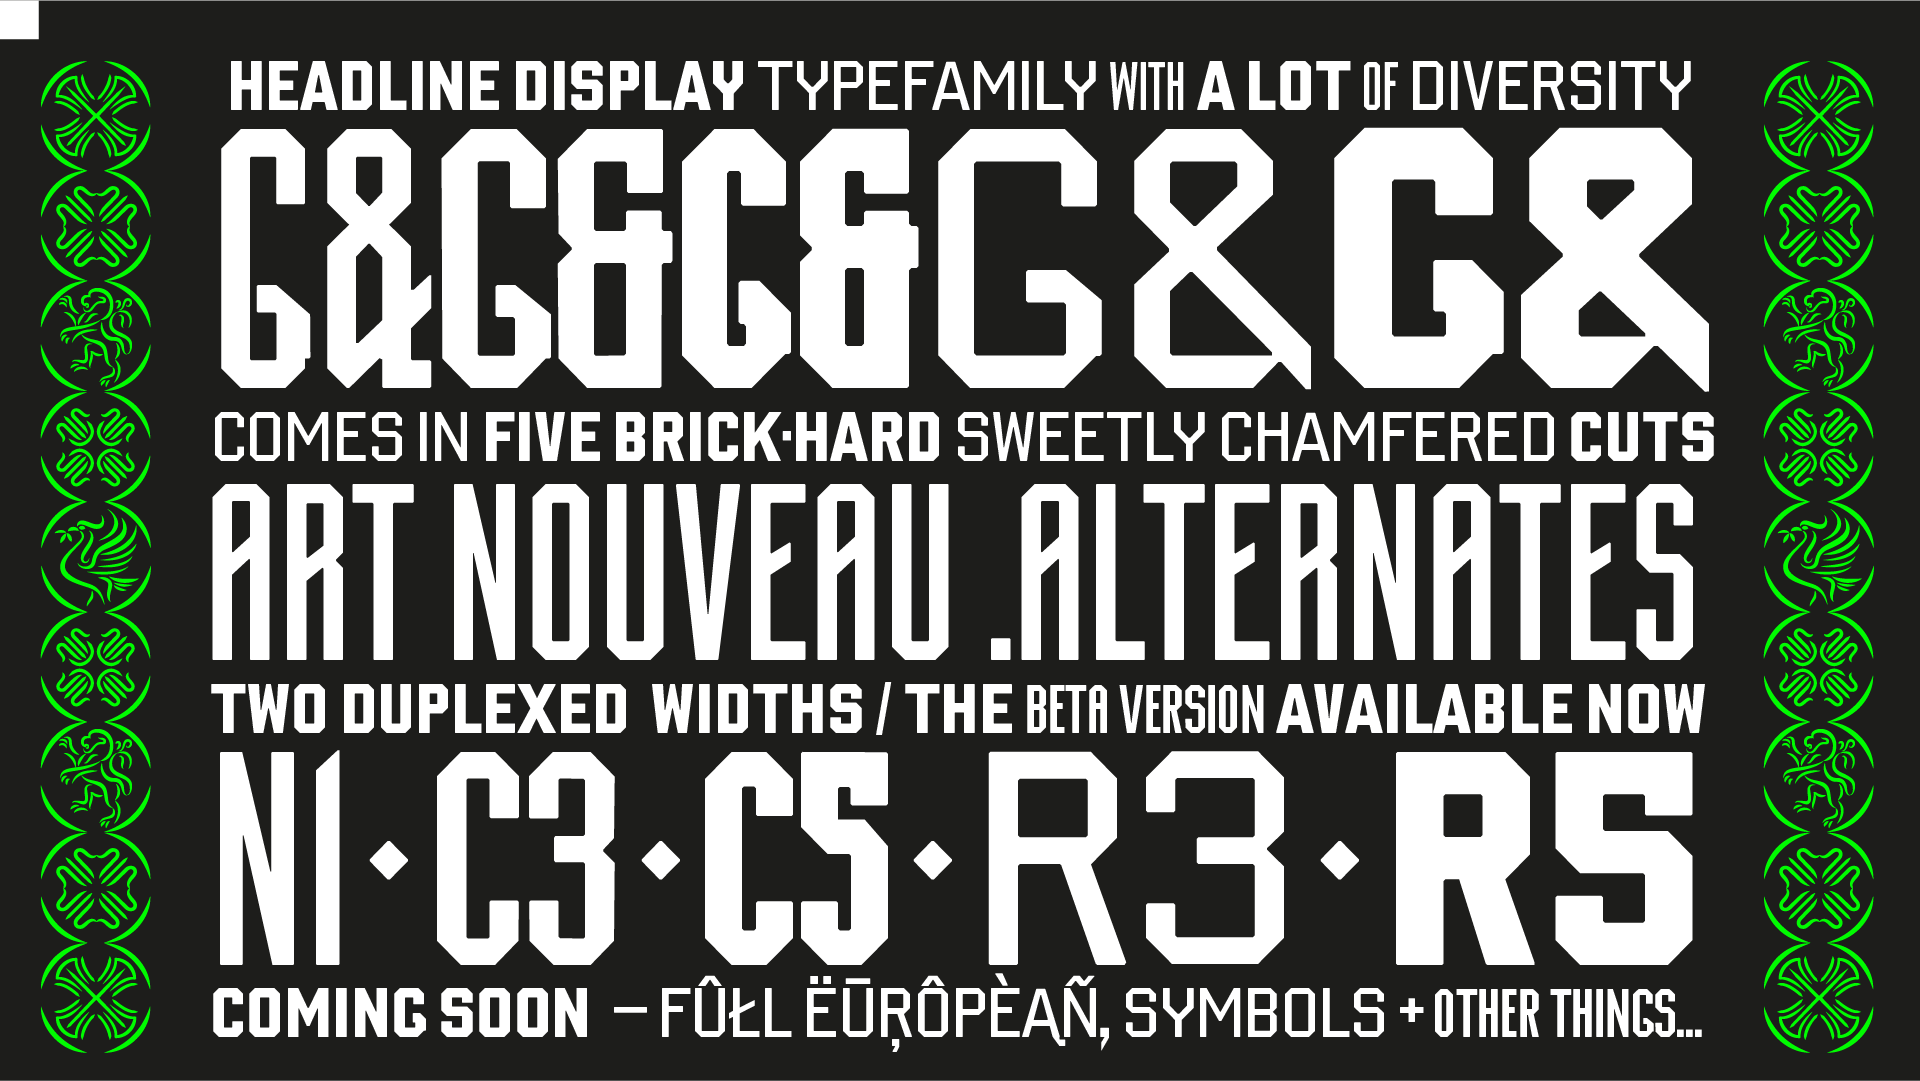 Cham font designed by Lewis McGuffie for typeverything.com